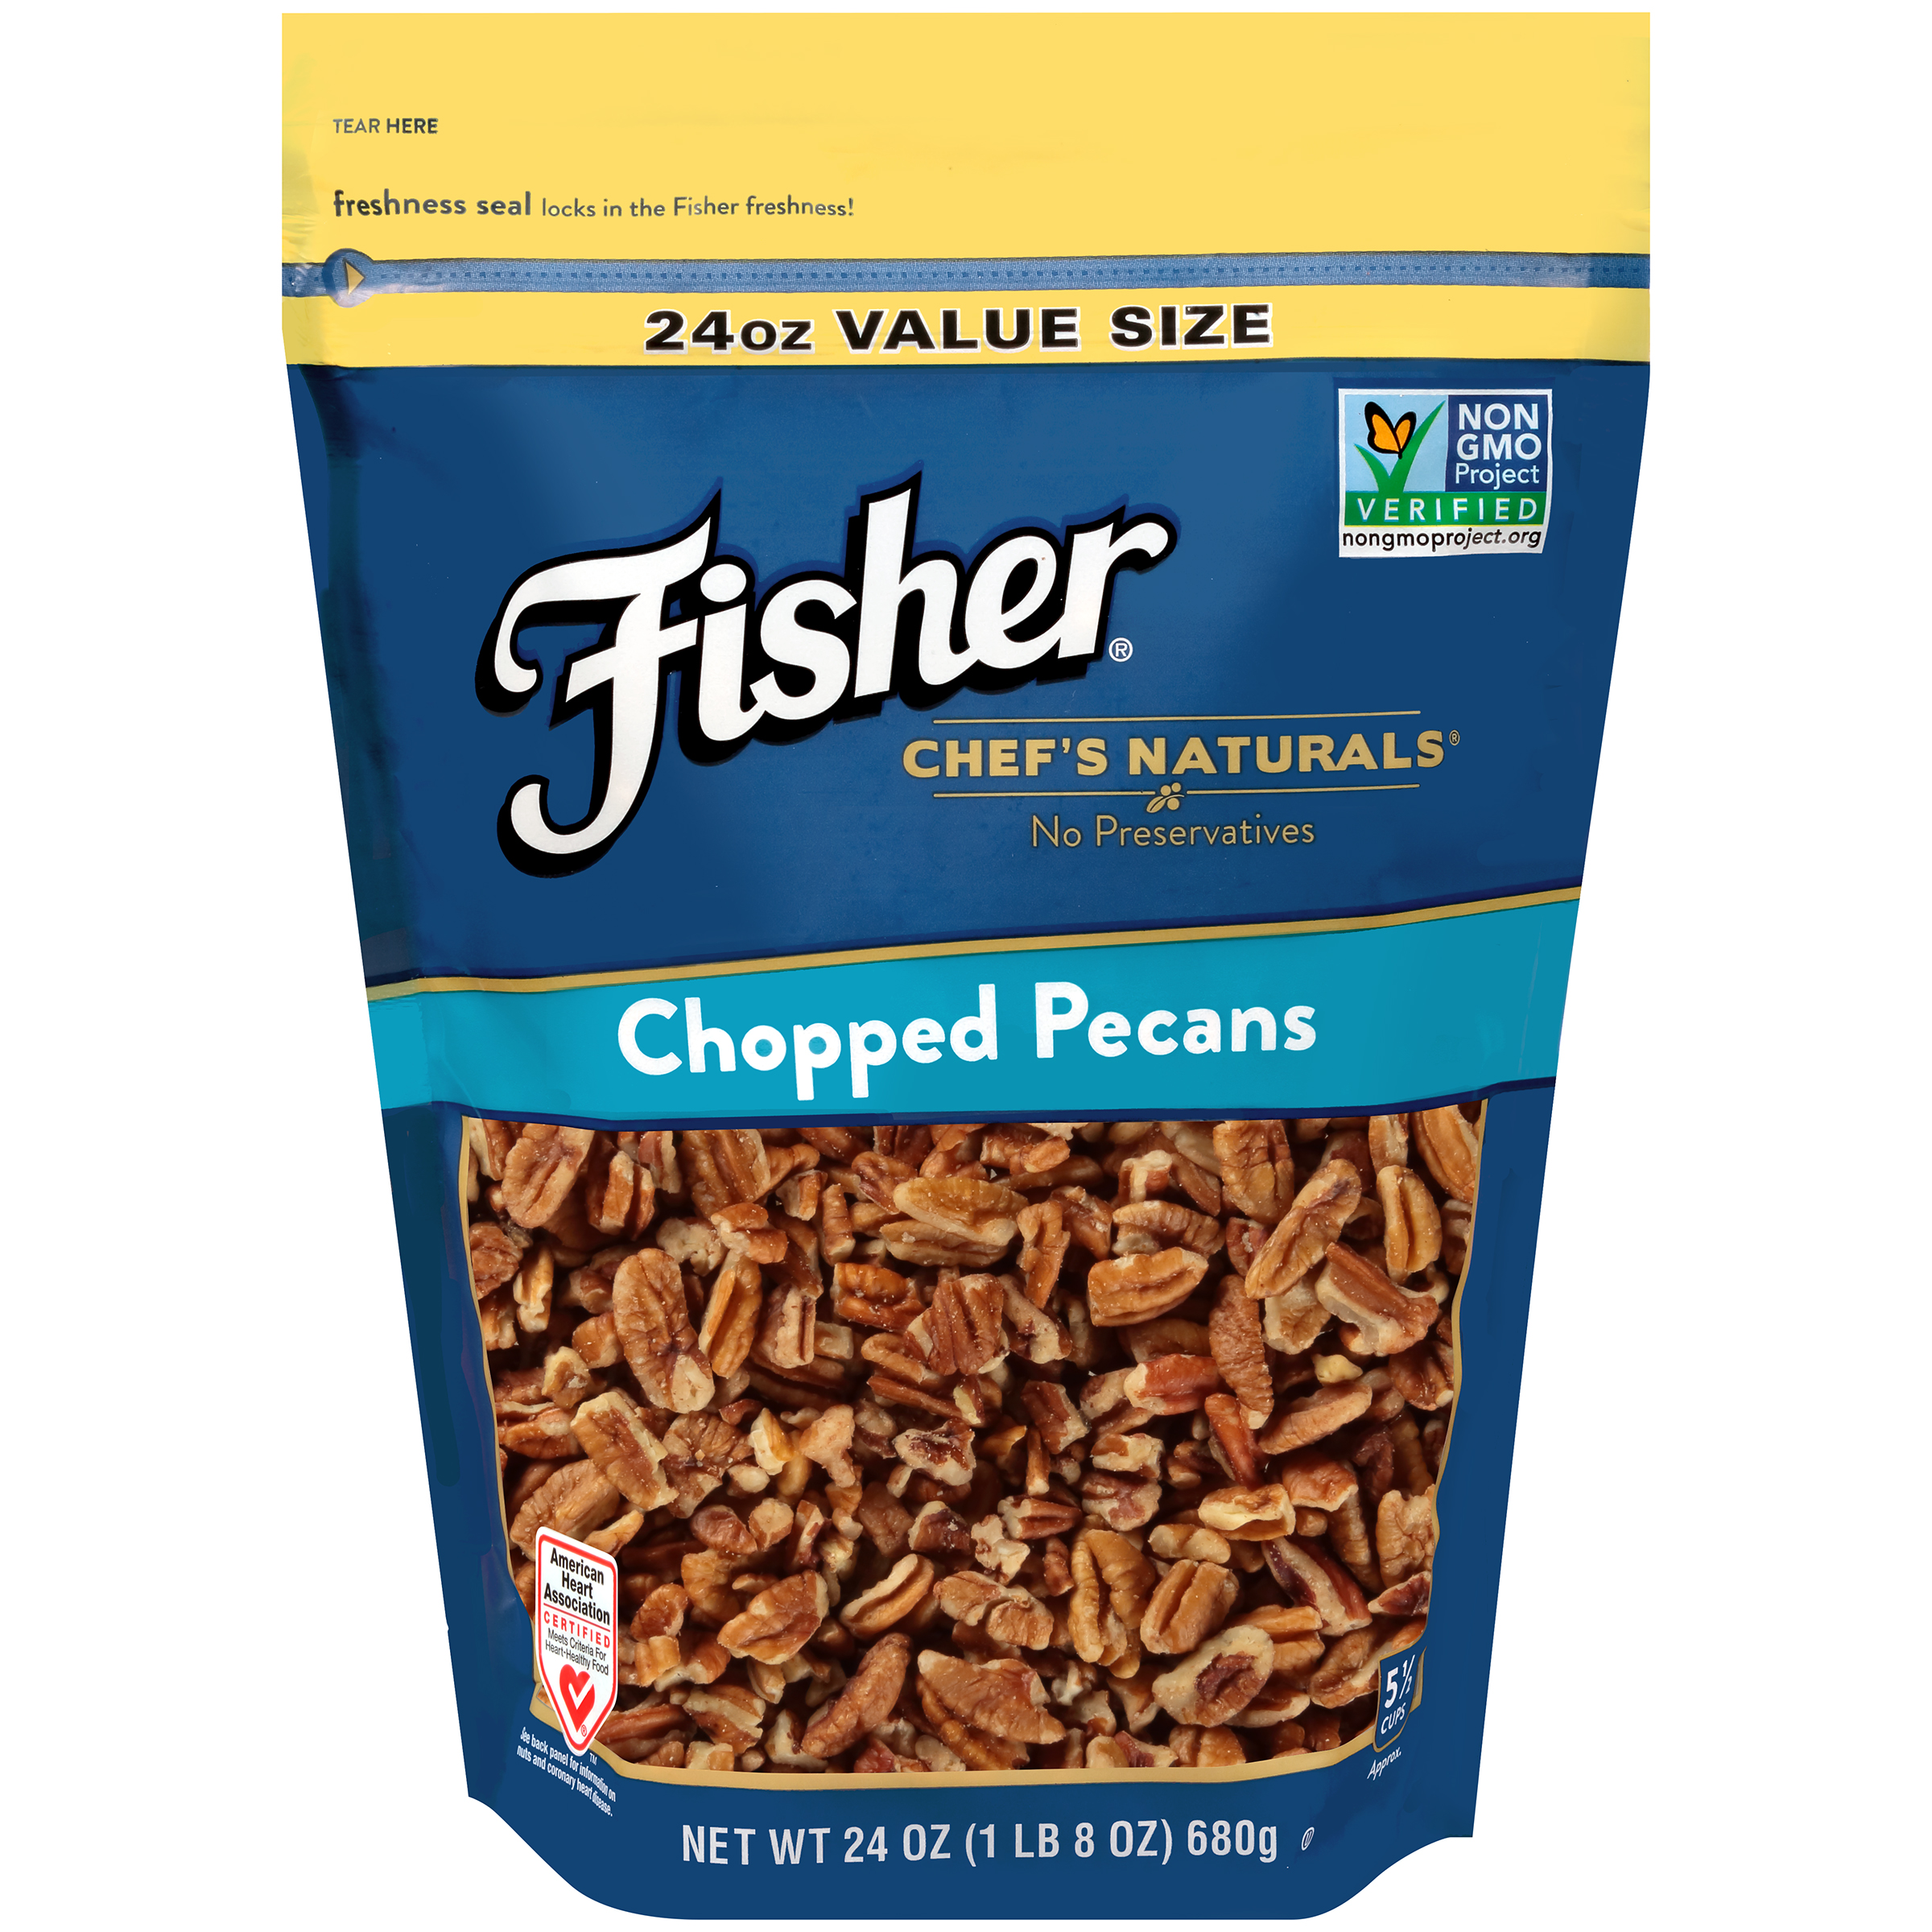 (2 Pack) Fisher Chef's Naturals Chopped Pecans, Non-GMO, 24 oz